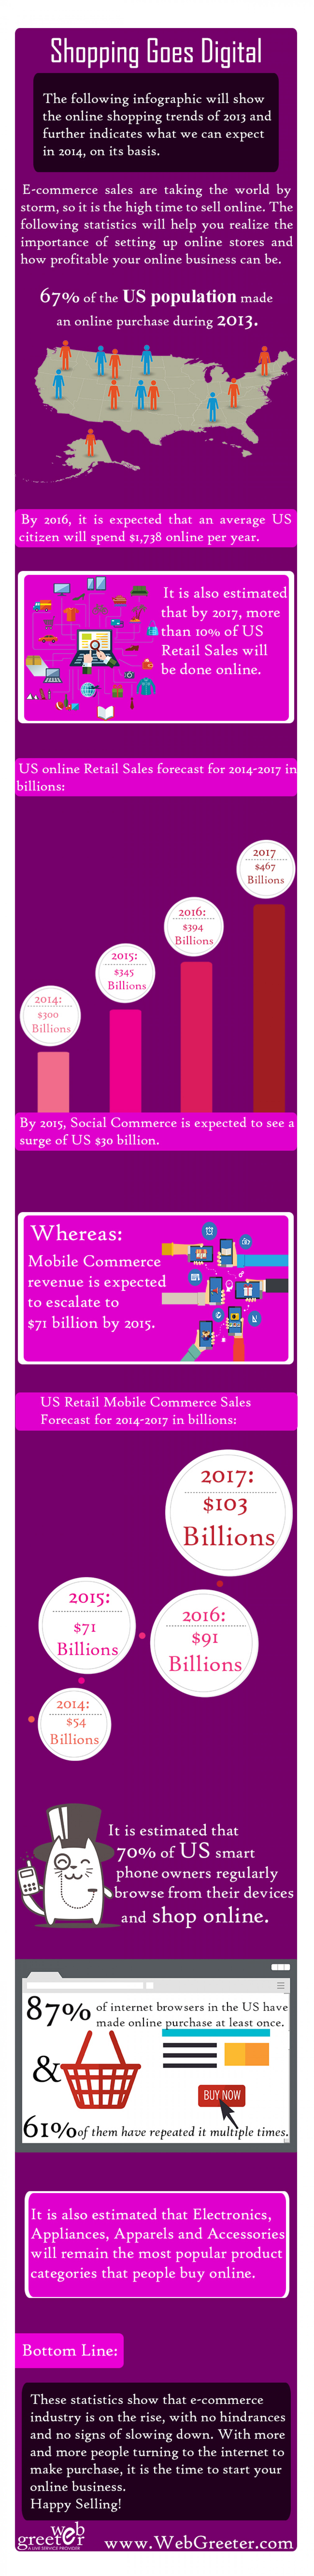 Shopping Goes Digital Infographic